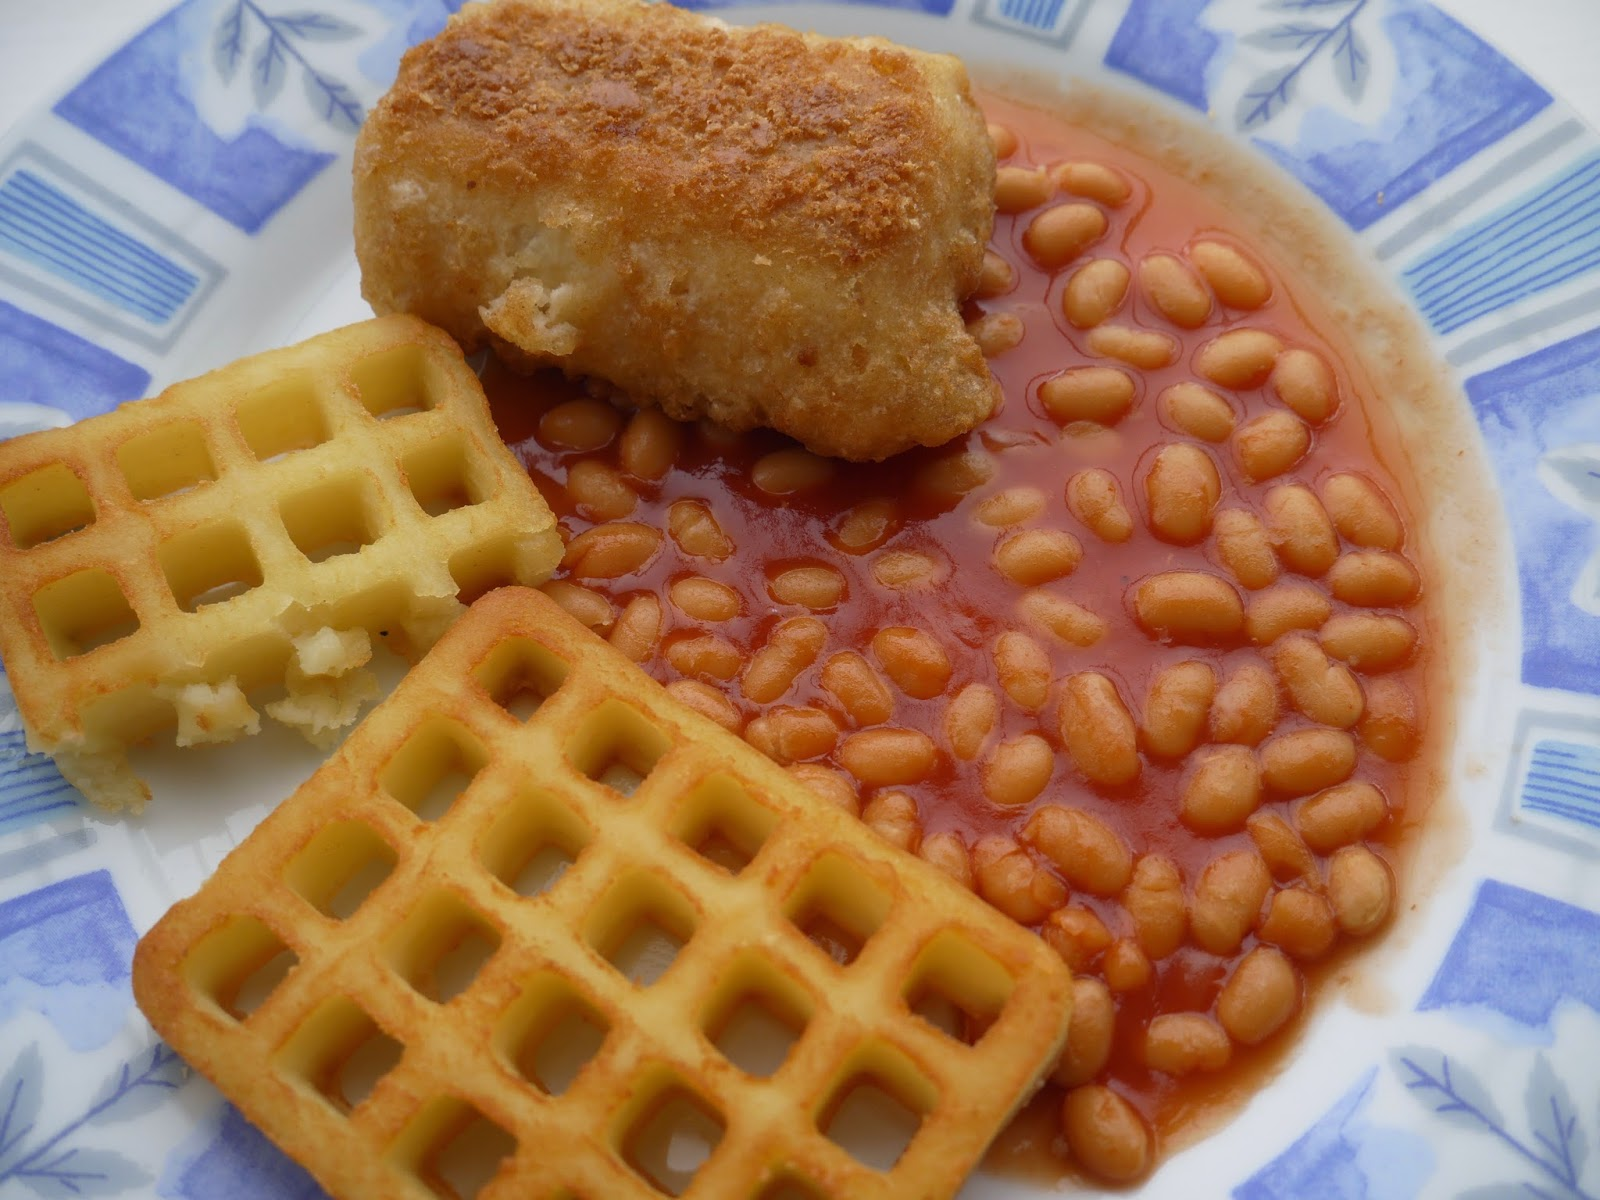 Potato Waffles And Beans images